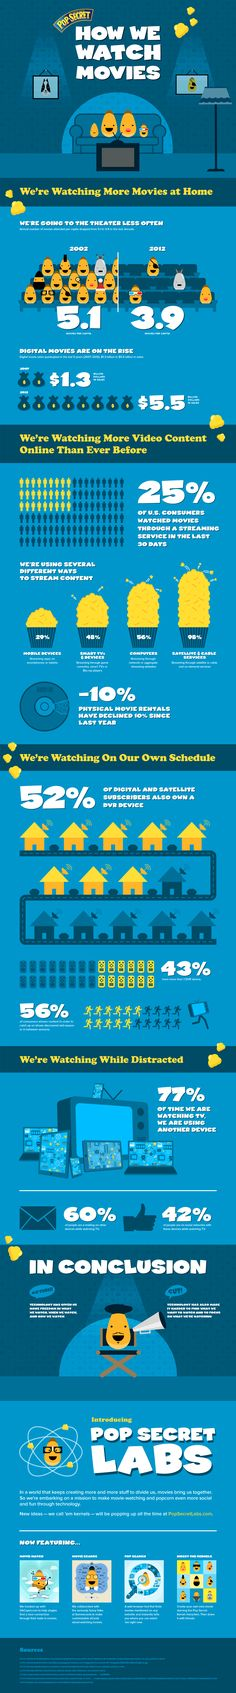 #Infographic: How We Watch Movies, from #PopSecret